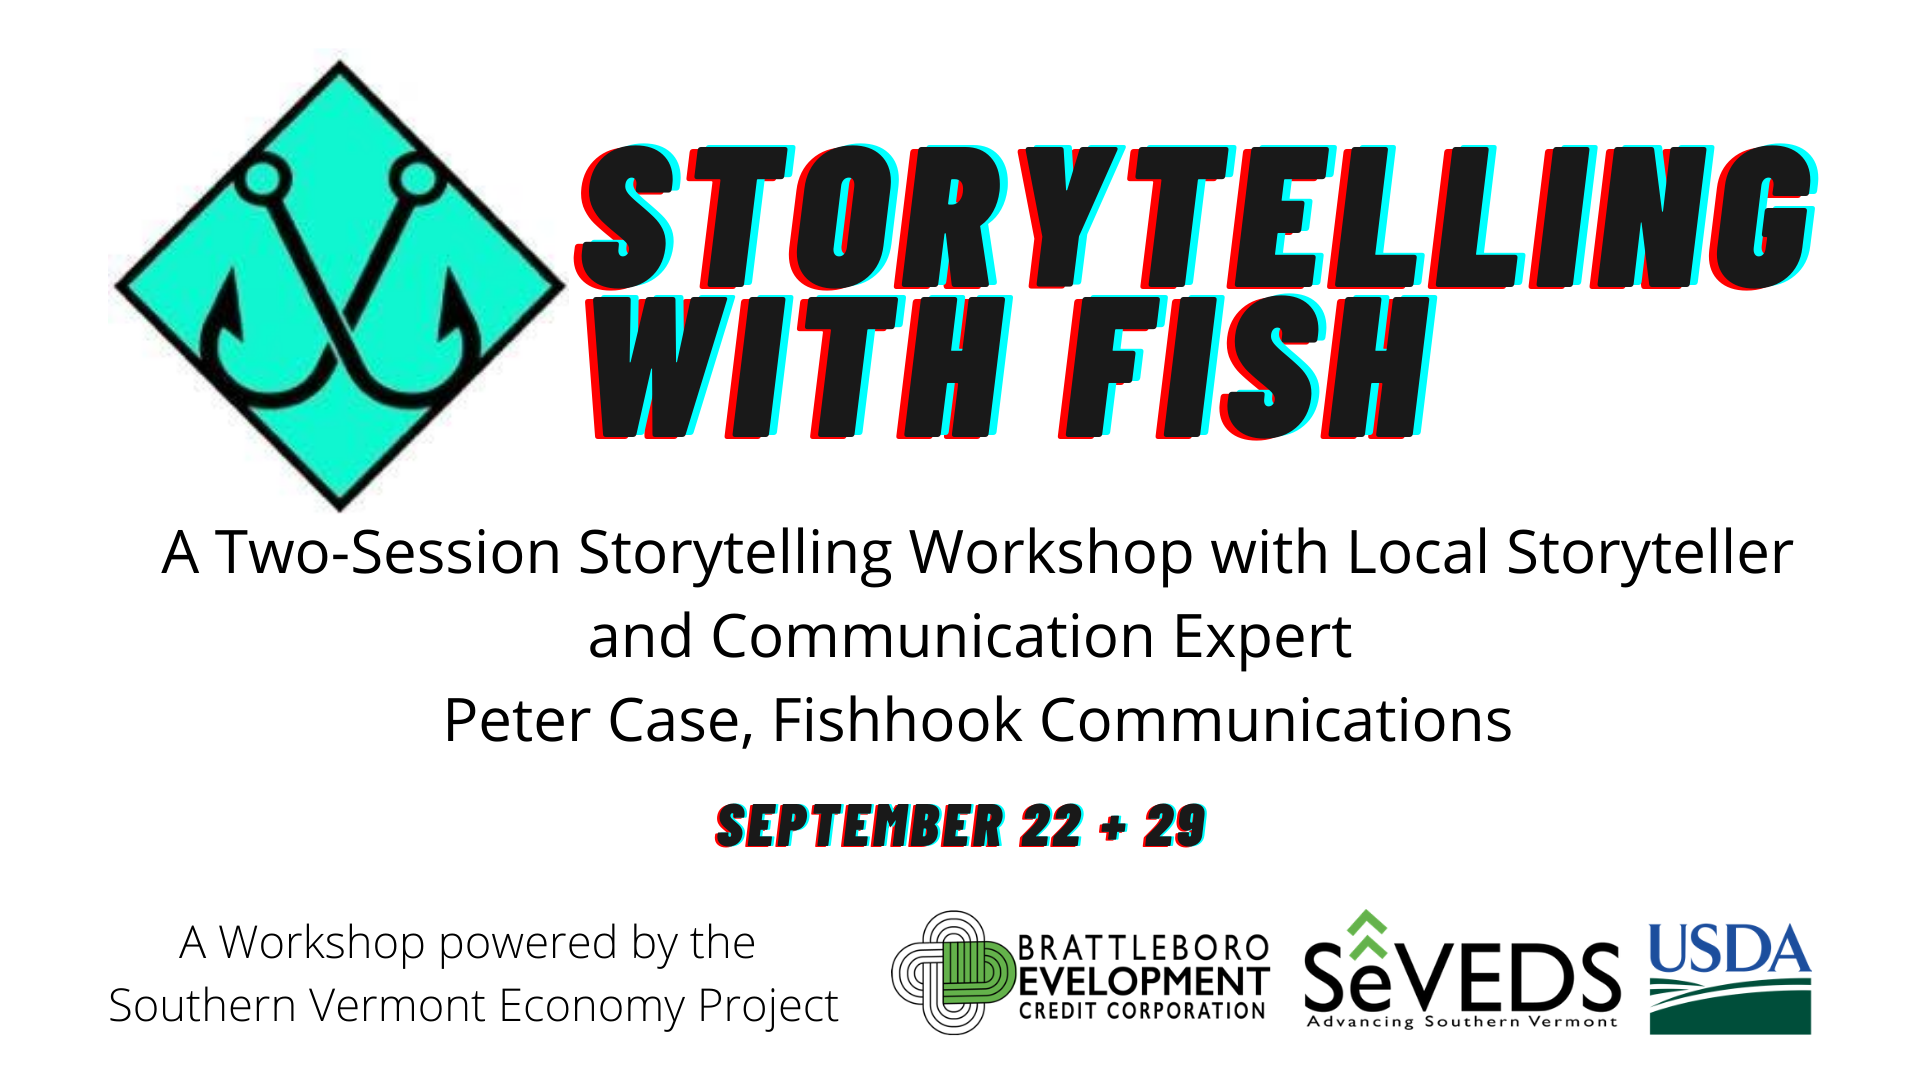 SVEP: Storytelling with Fish for Nonprofits, Municipalities, and Small Businesses (Cohort 1)